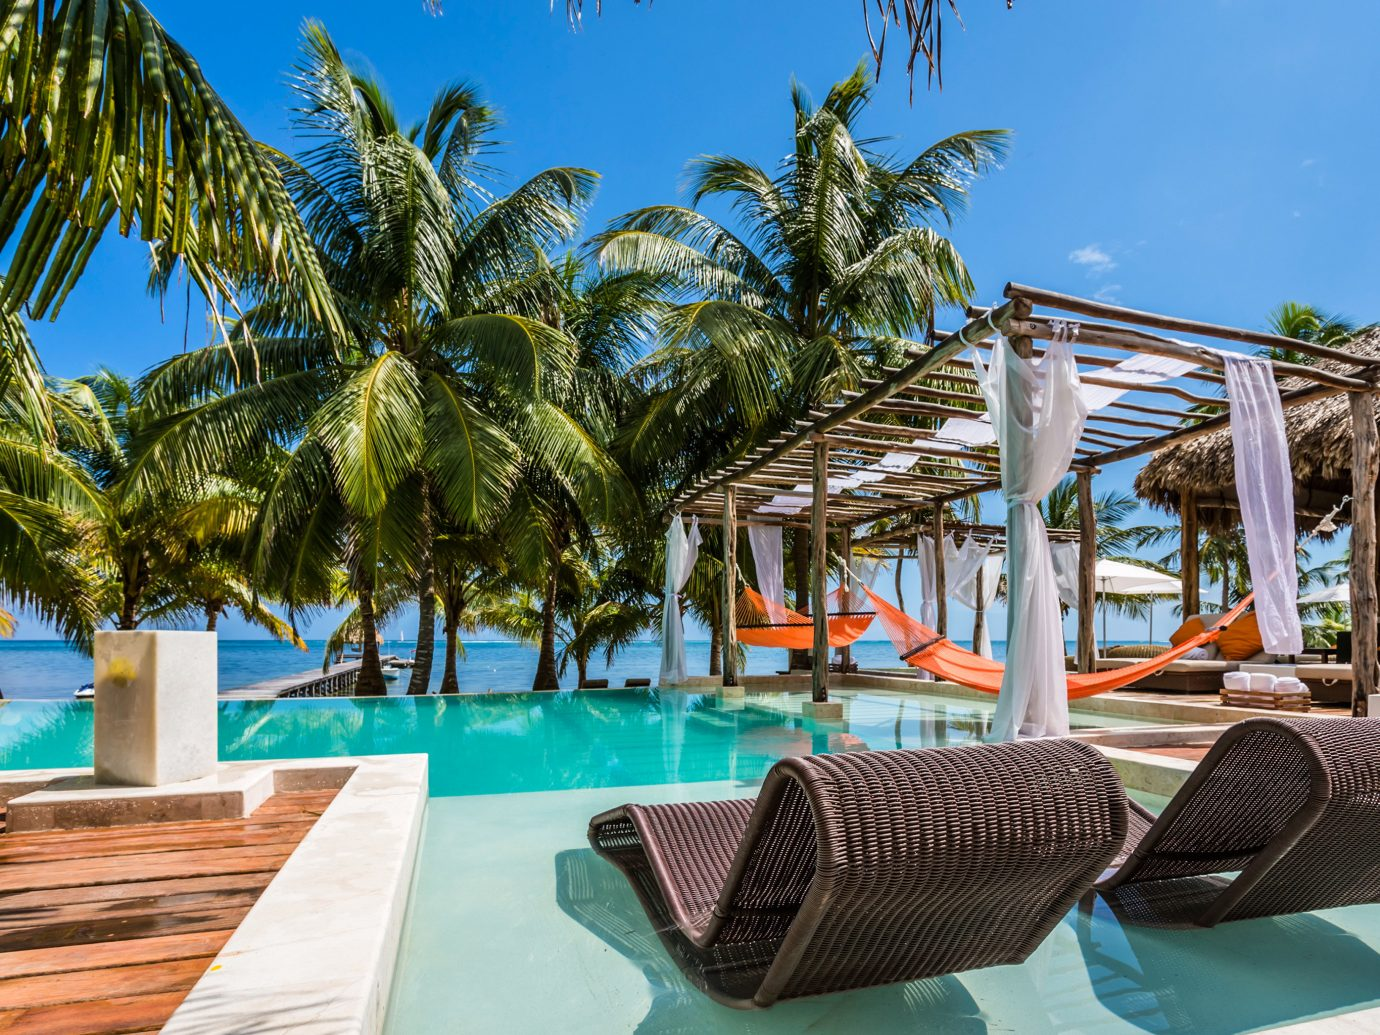 Infinity Pool In San Pedro, Belize - El Secreto Hotel